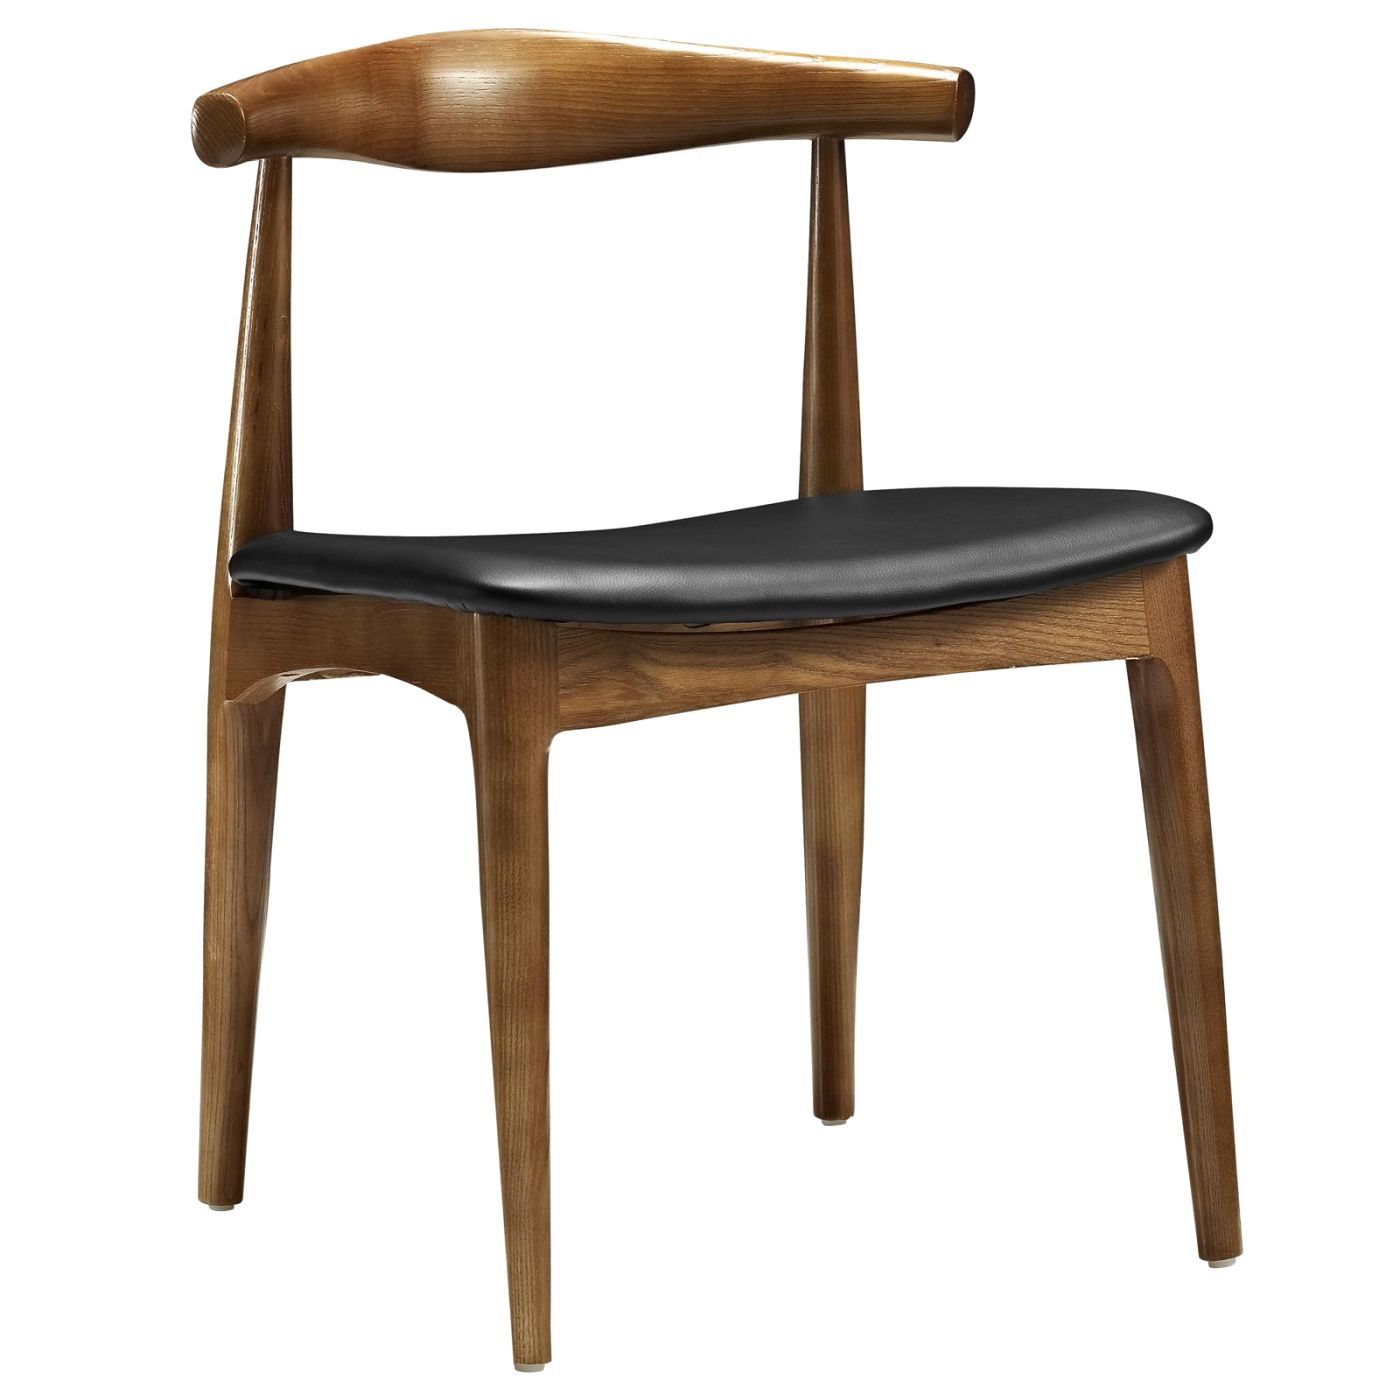 Tracy mid century wood dining chair with faux leather seat black